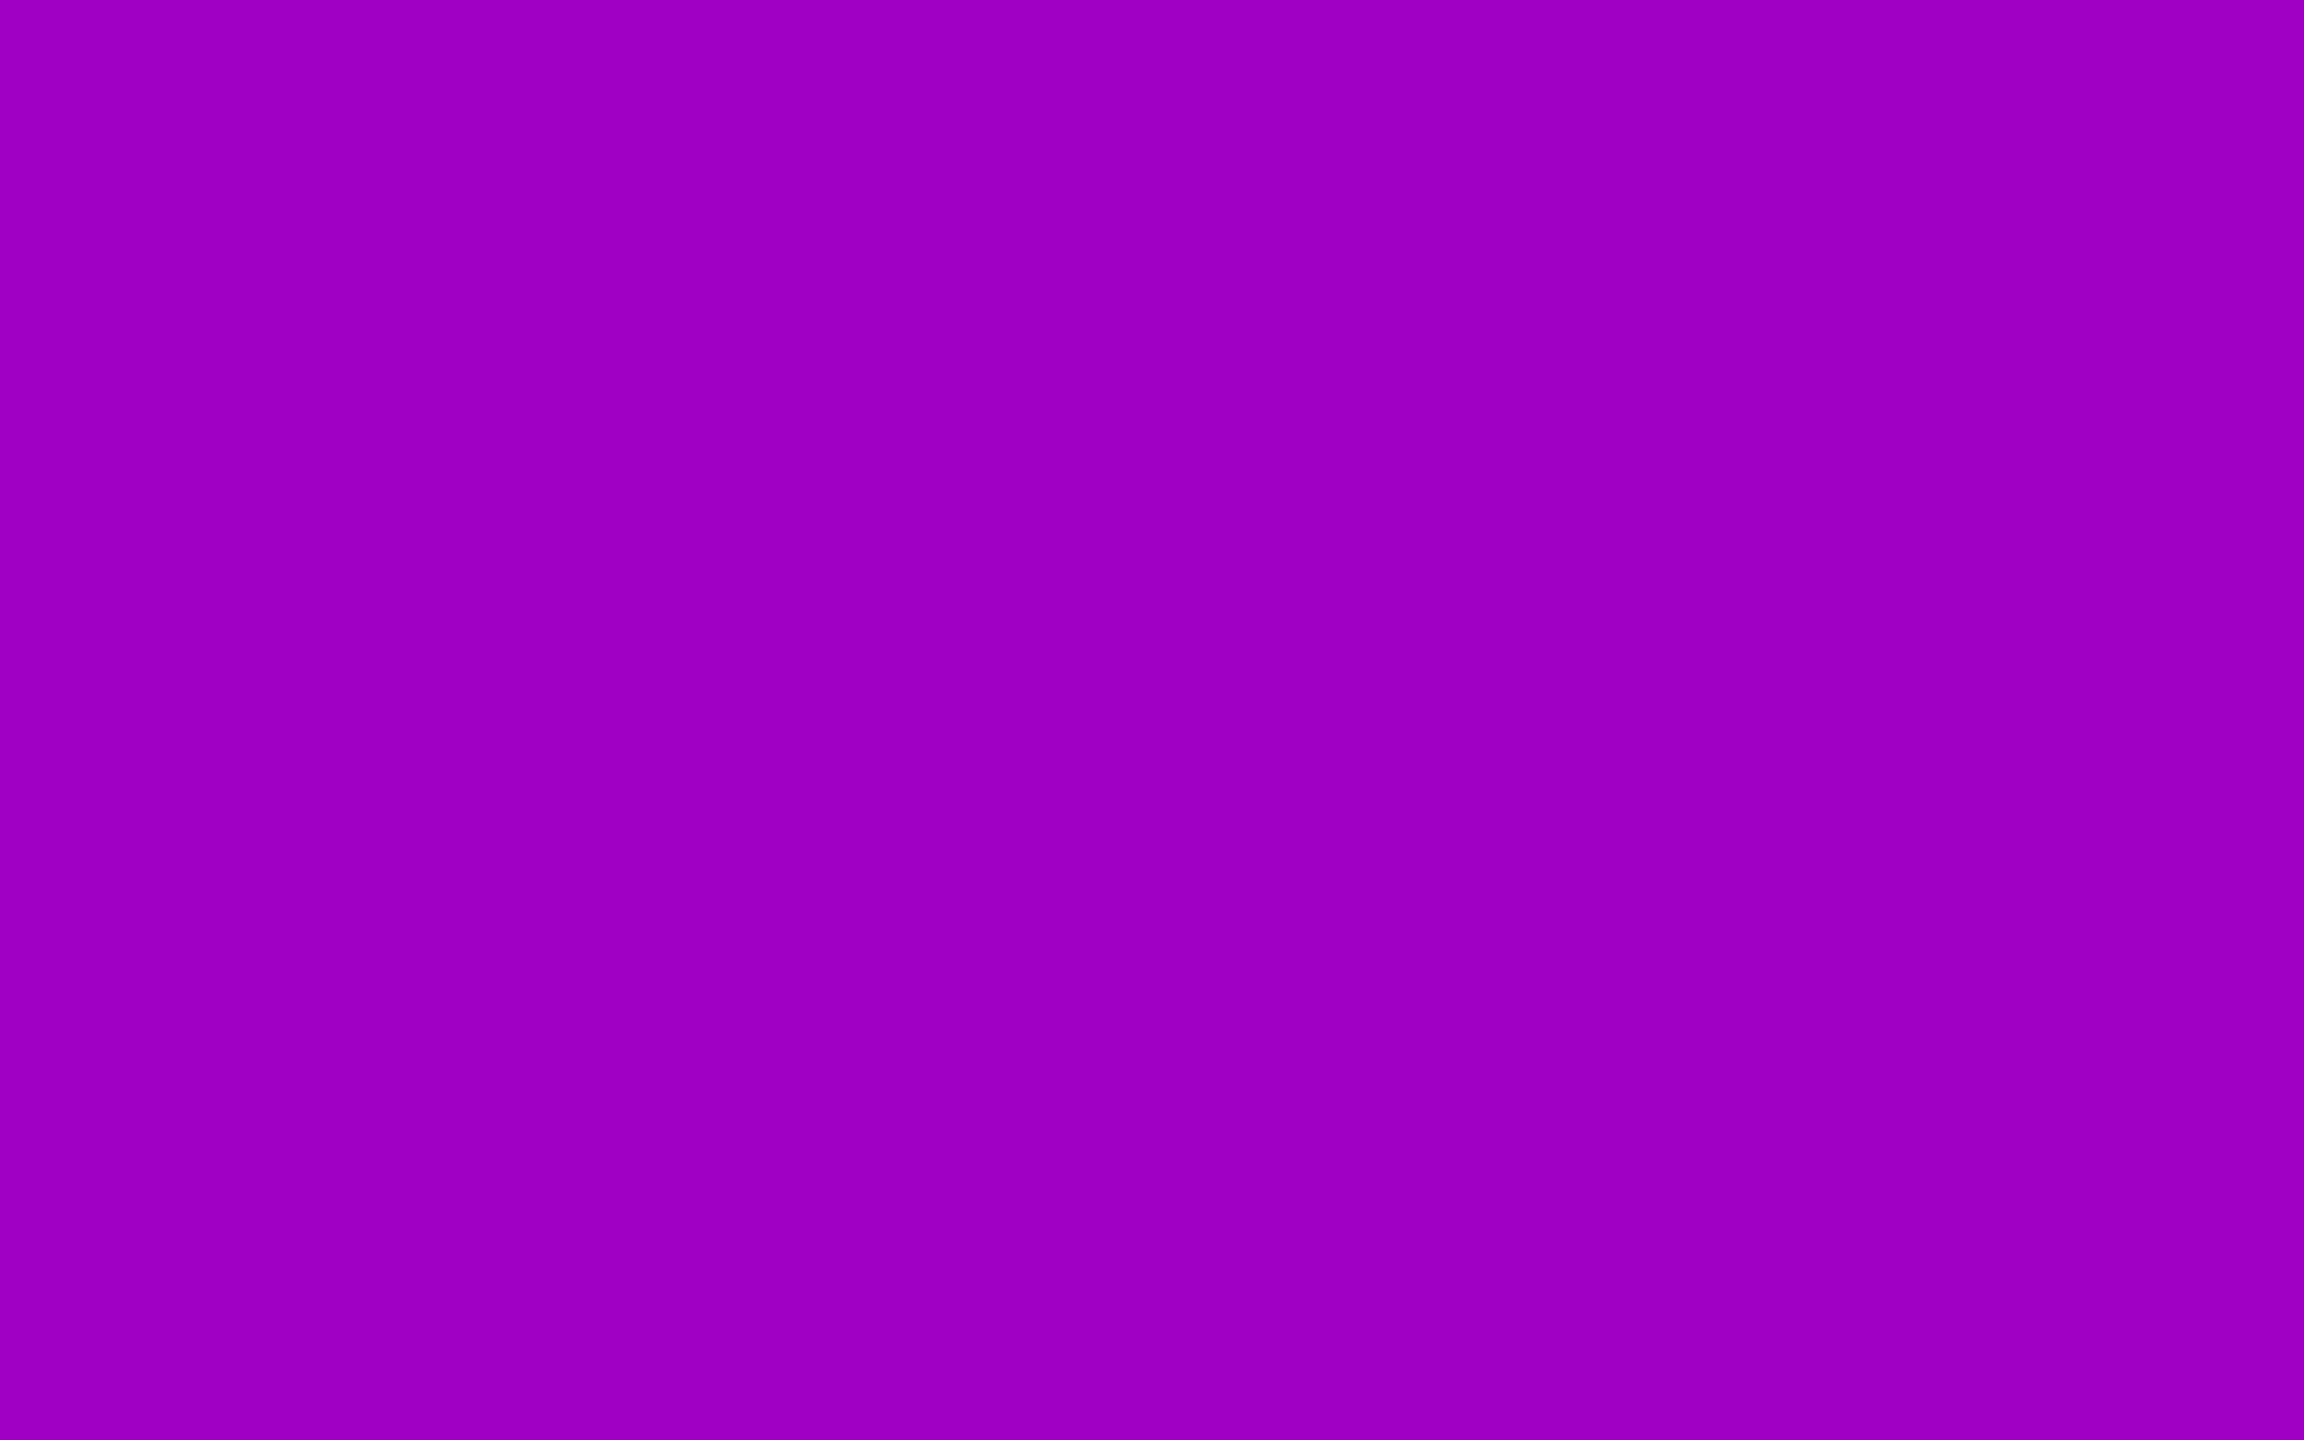 2304x1440 Purple Munsell Solid Color Background